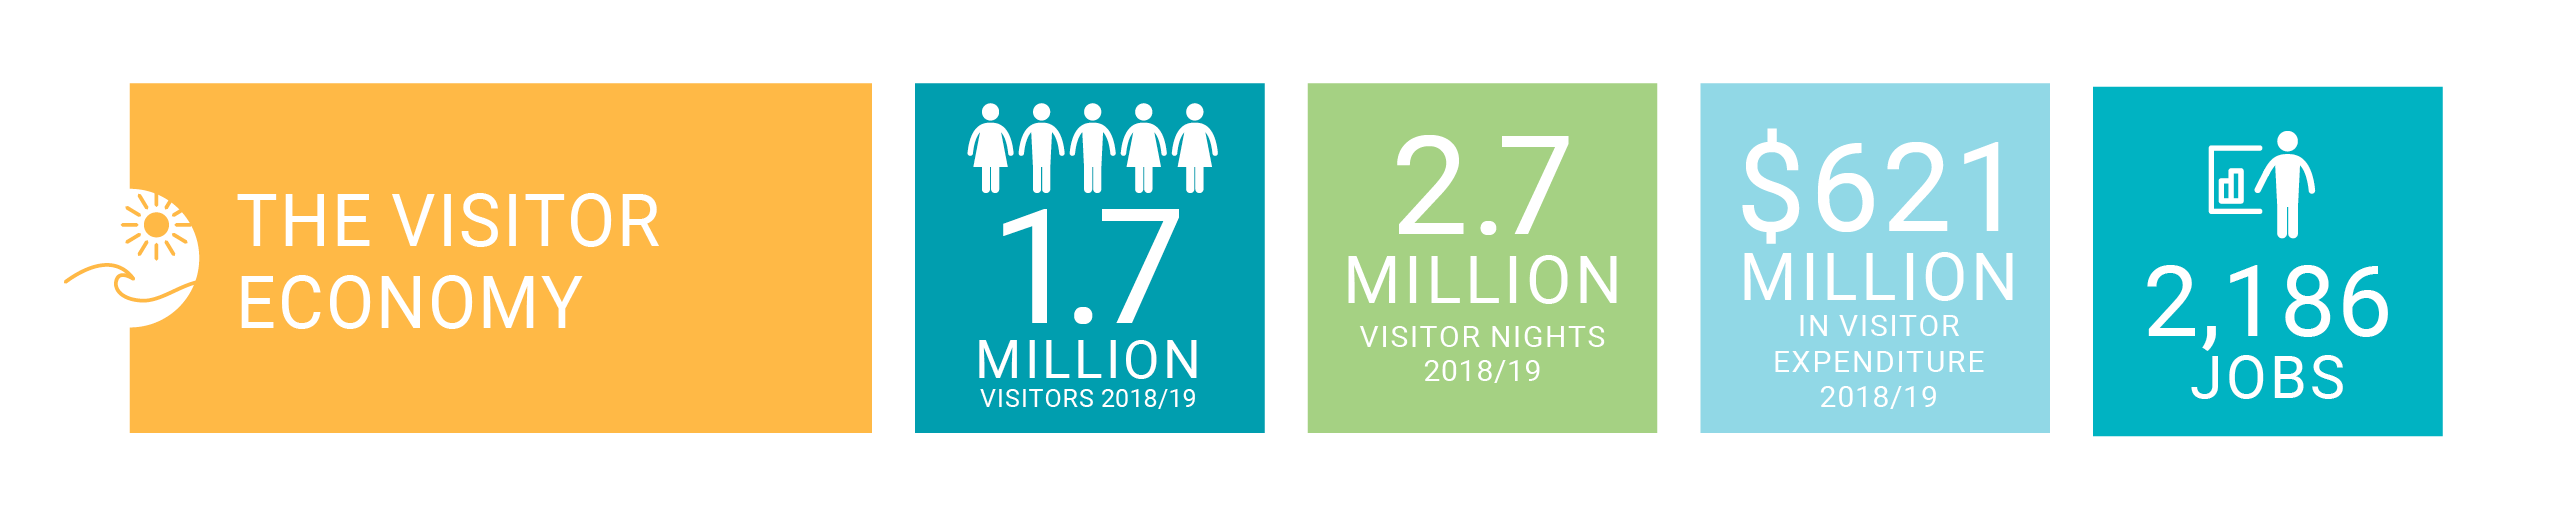 In 2018 to 2019, the visitor economy delivered 1.7 million visitors, 2.7 million visitor nights, $621 million visitor expenditure and 2186 jobs.